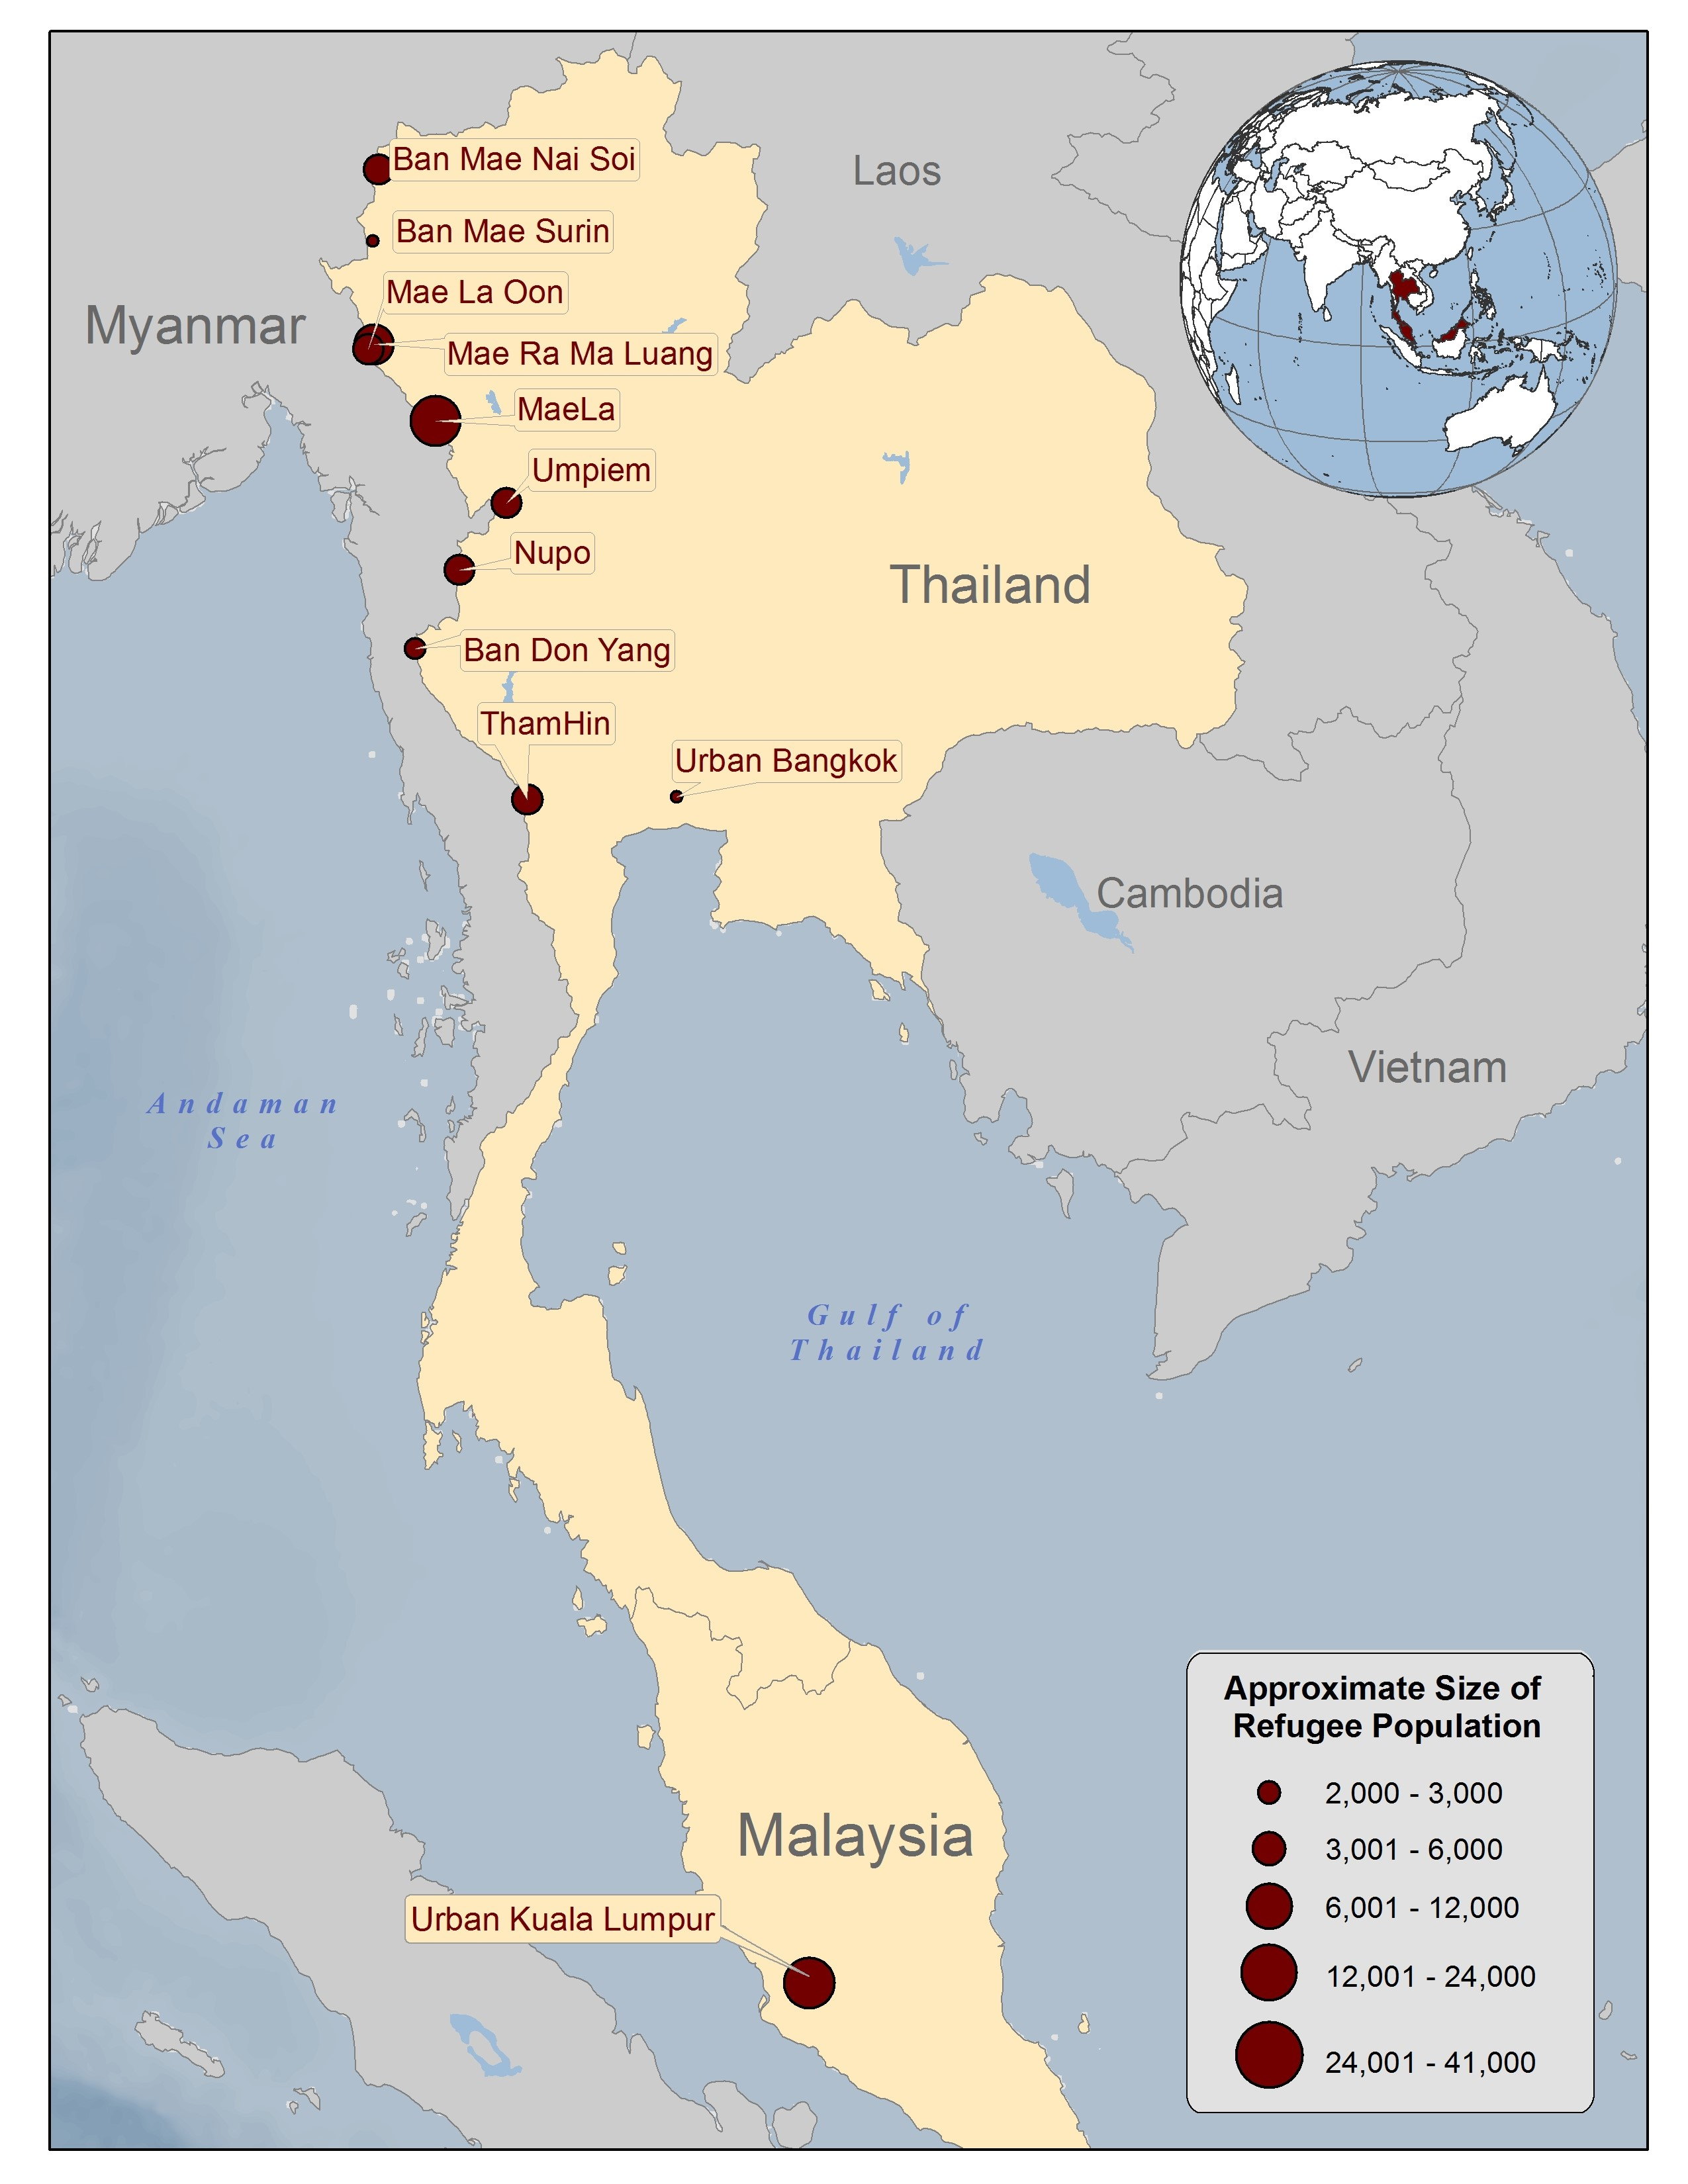 A map of Thailand showing the location of Burmese refugee camps